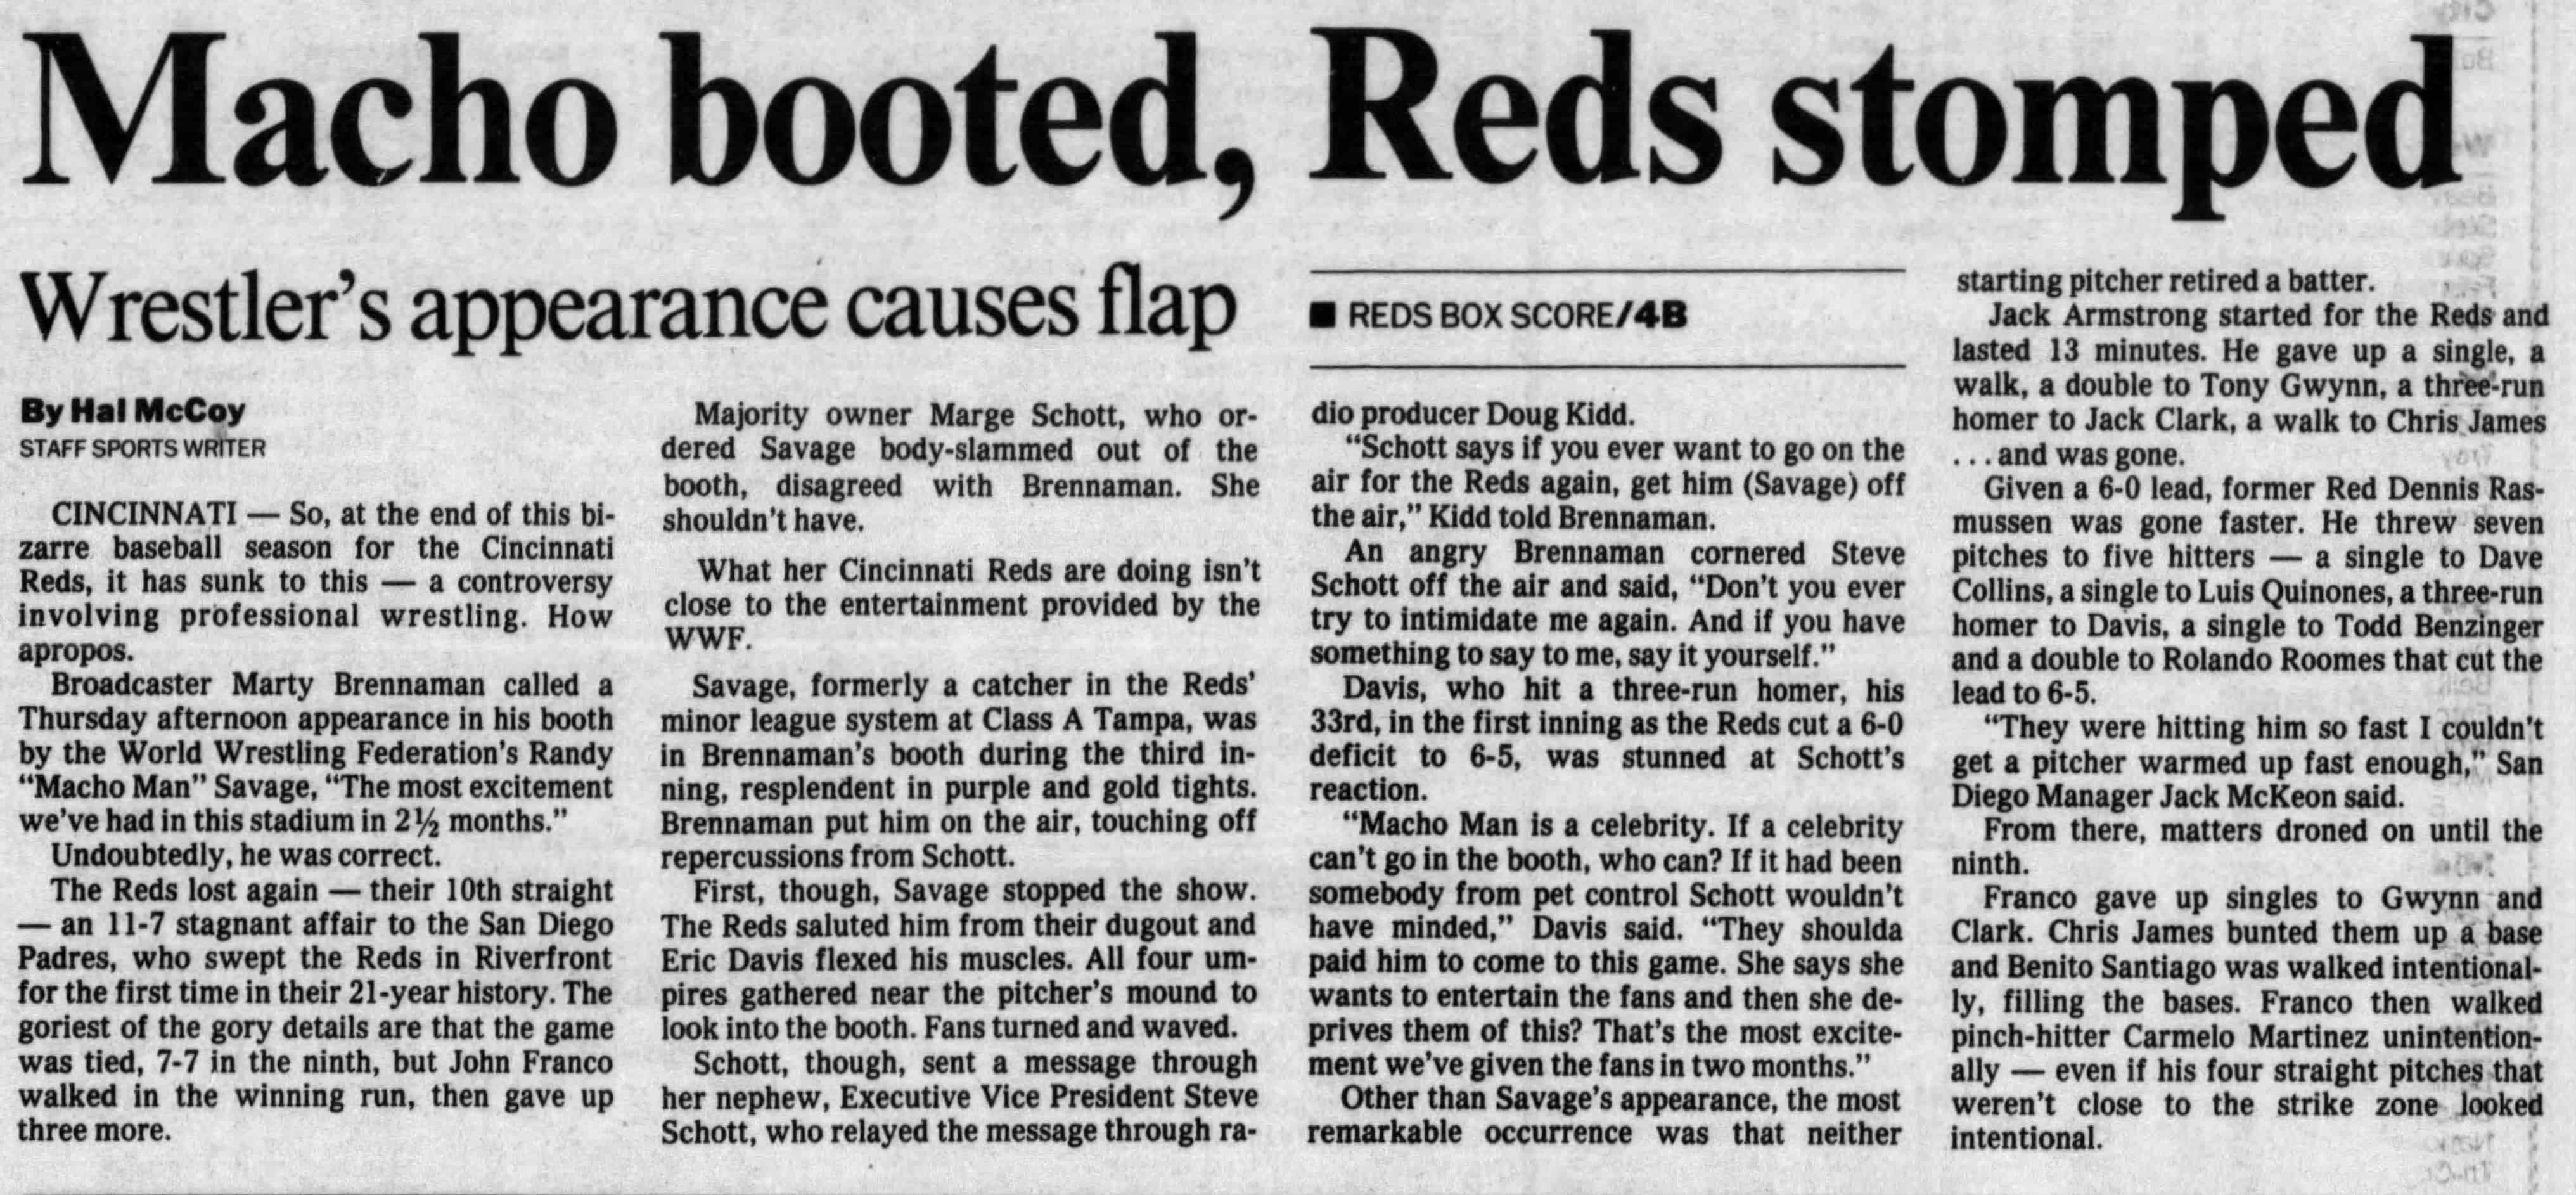 A Dayton Daily News (Friday, September 22, 1989 edition) article on how Randy Poffo caused a bit too much excitement and got kicked out while making an appearance in the booth at a Cincinnati Reds game.